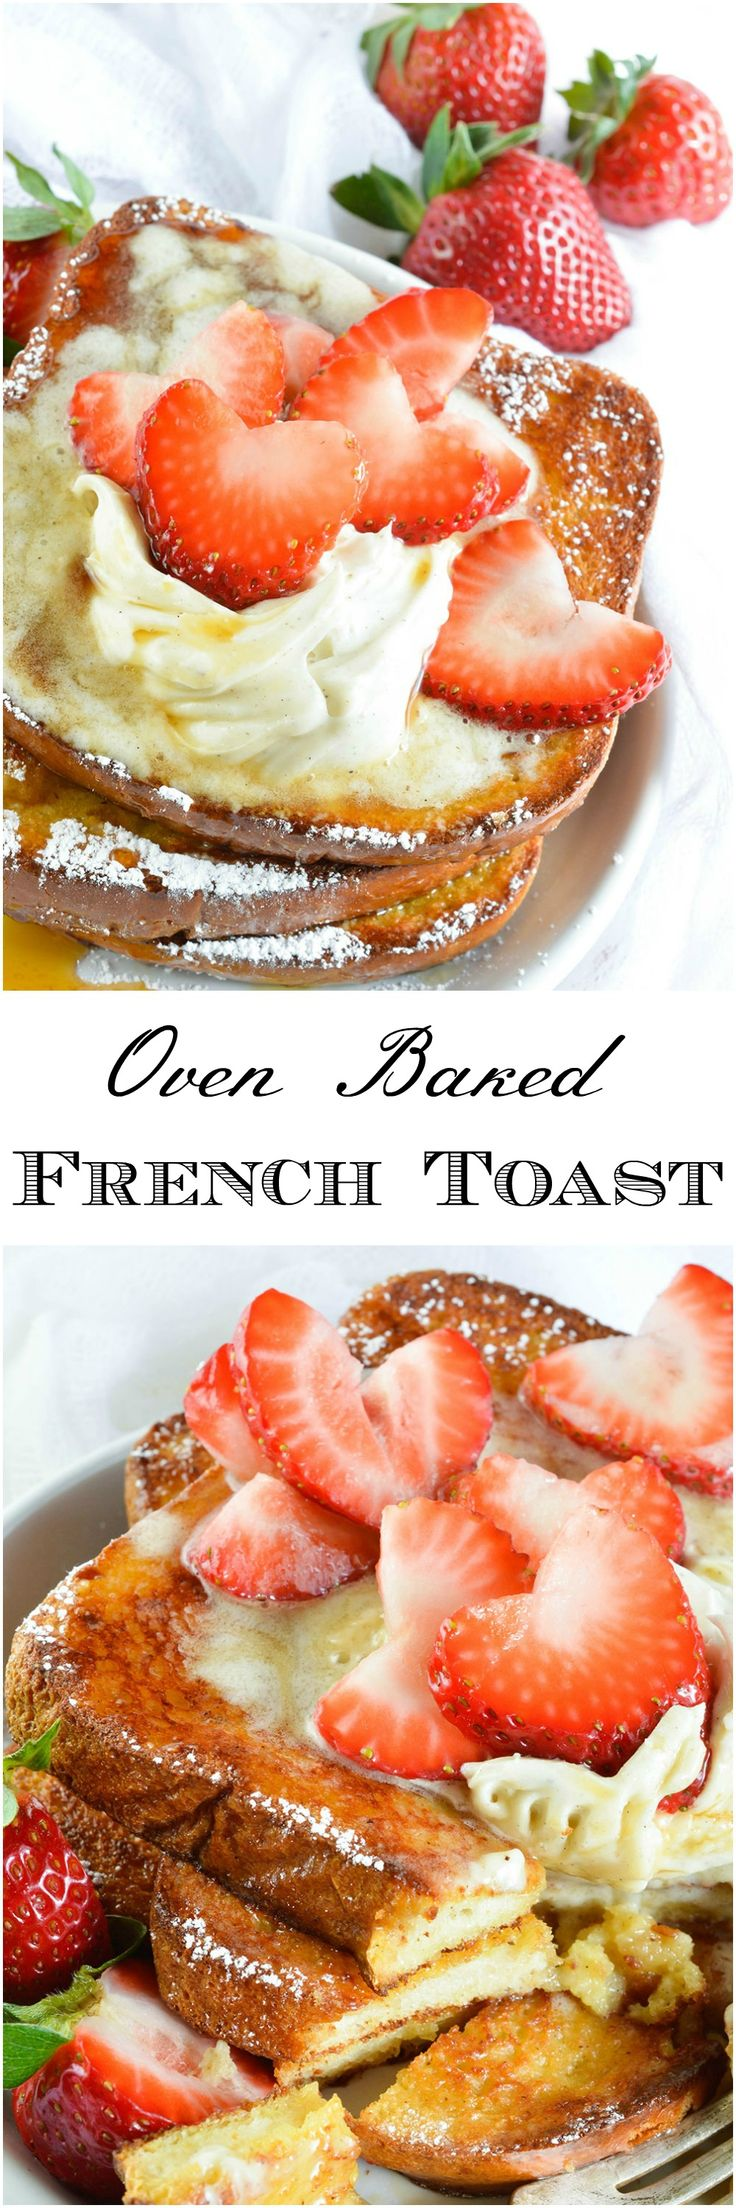 This Easy Baked French Toast Recipe is perfect for serving a crowd! Serve up this French Toast with Vanilla Mascarpone, Maple Syrup and Fresh Strawberries for the ultimate special occasion breakfast or brunch. #breakfast #brunch wonkywonderful.com